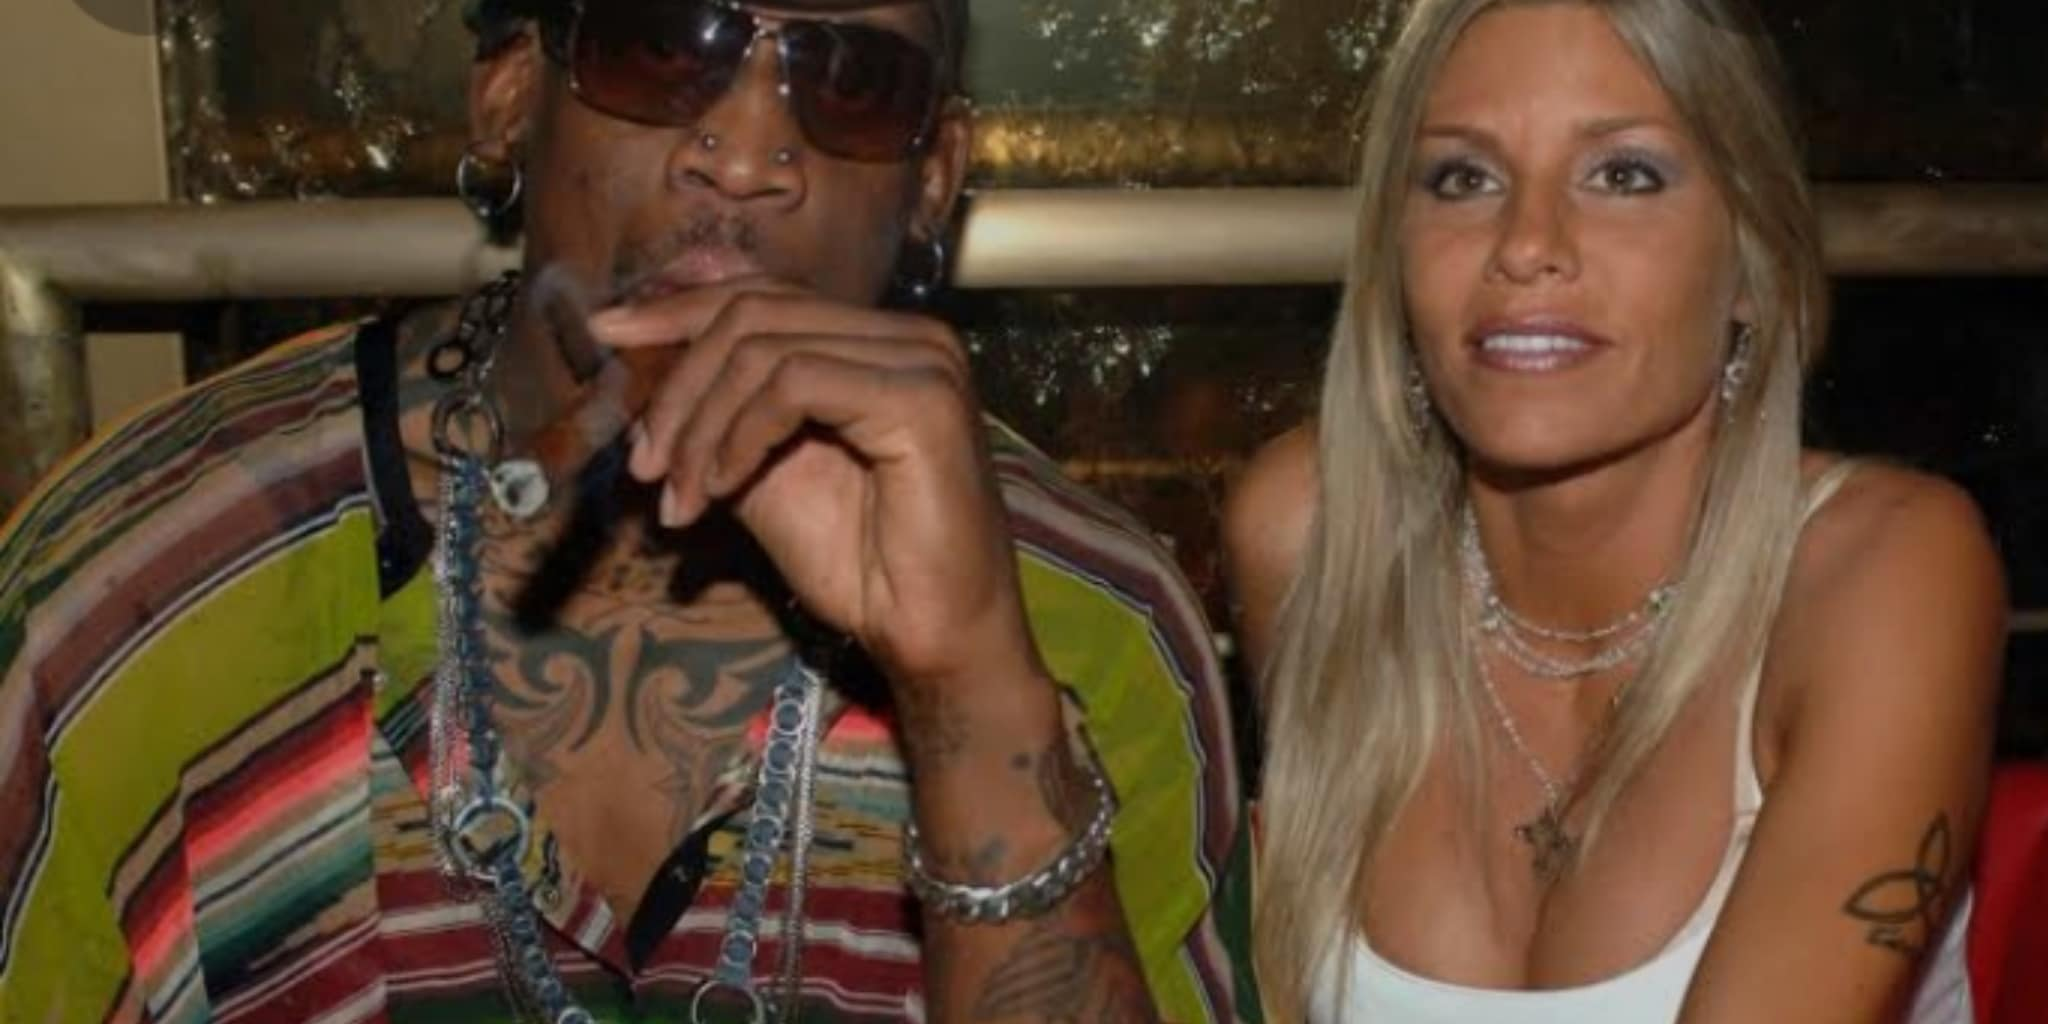 Michelle Moyer's Biography: What to know Dennis Rodman's ex-wife